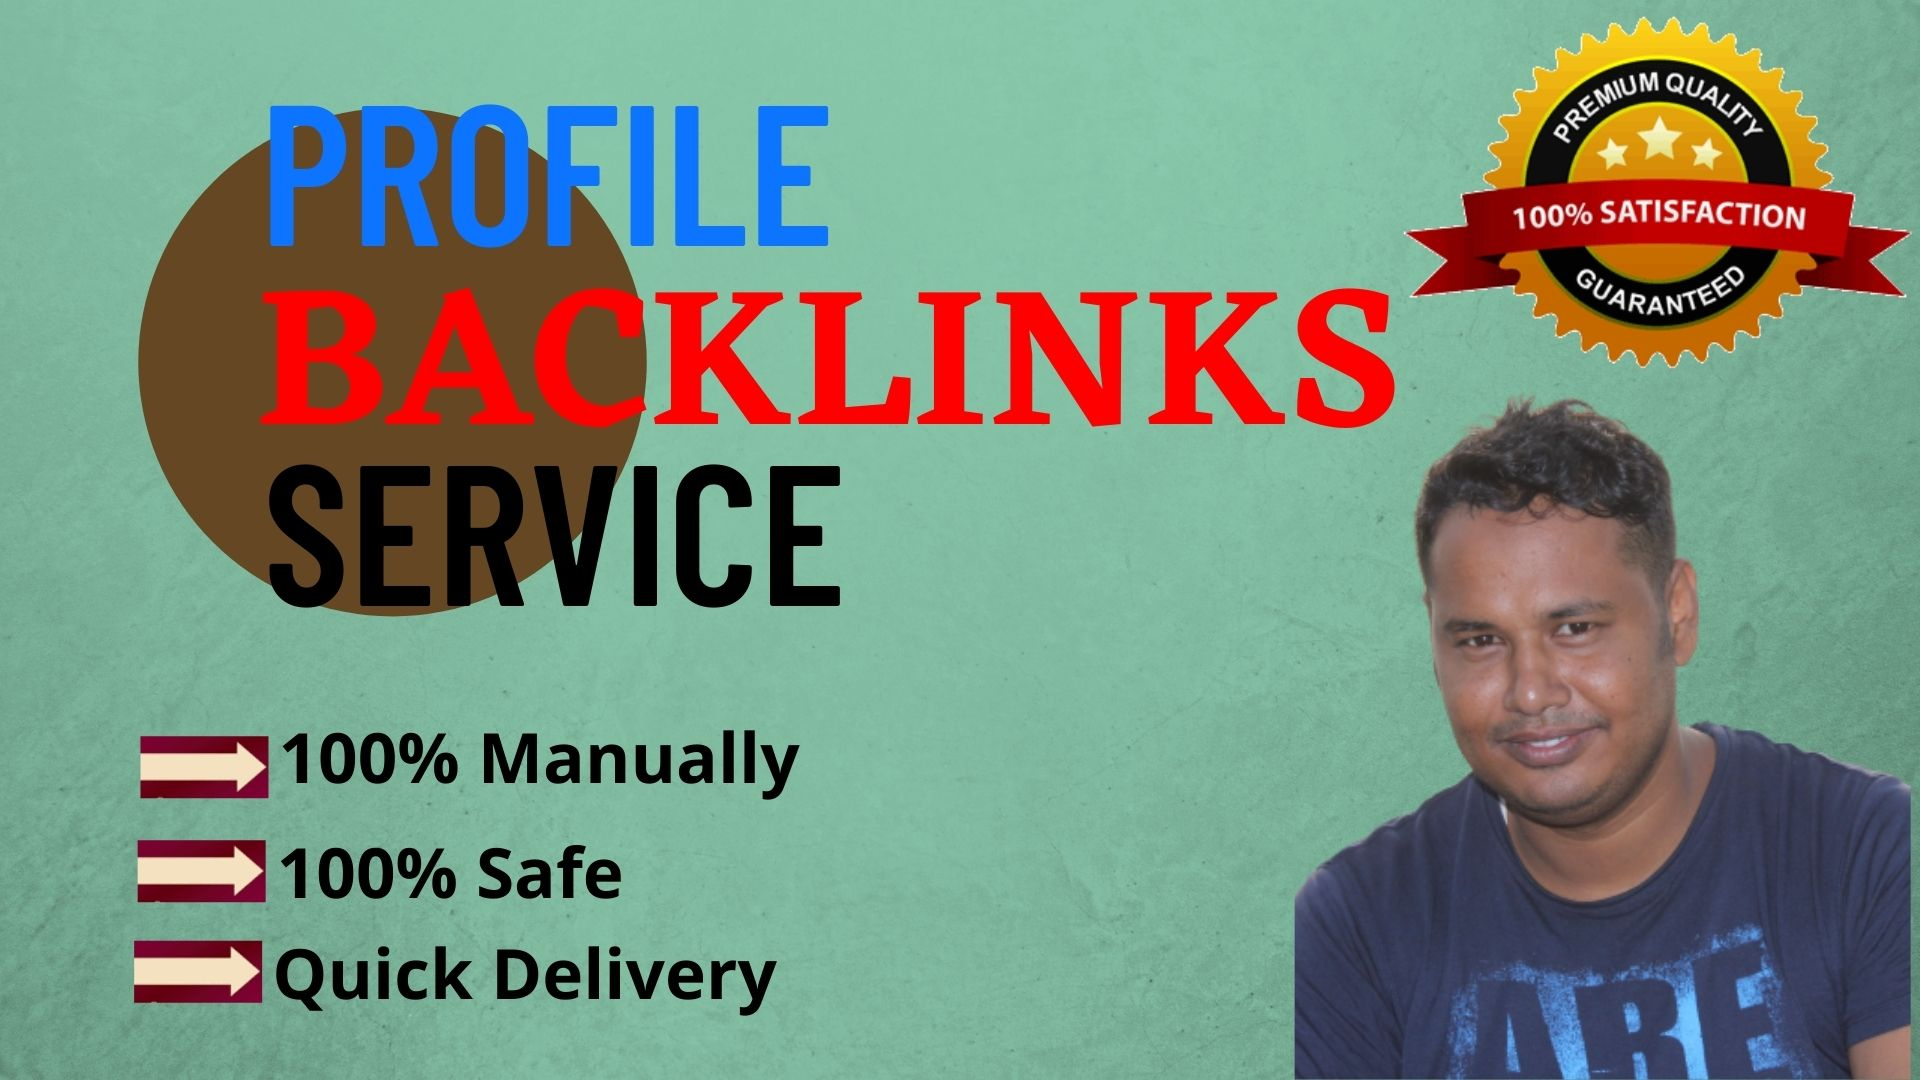 I Will Manually Provide 100 Dofollow Profile Backlinks